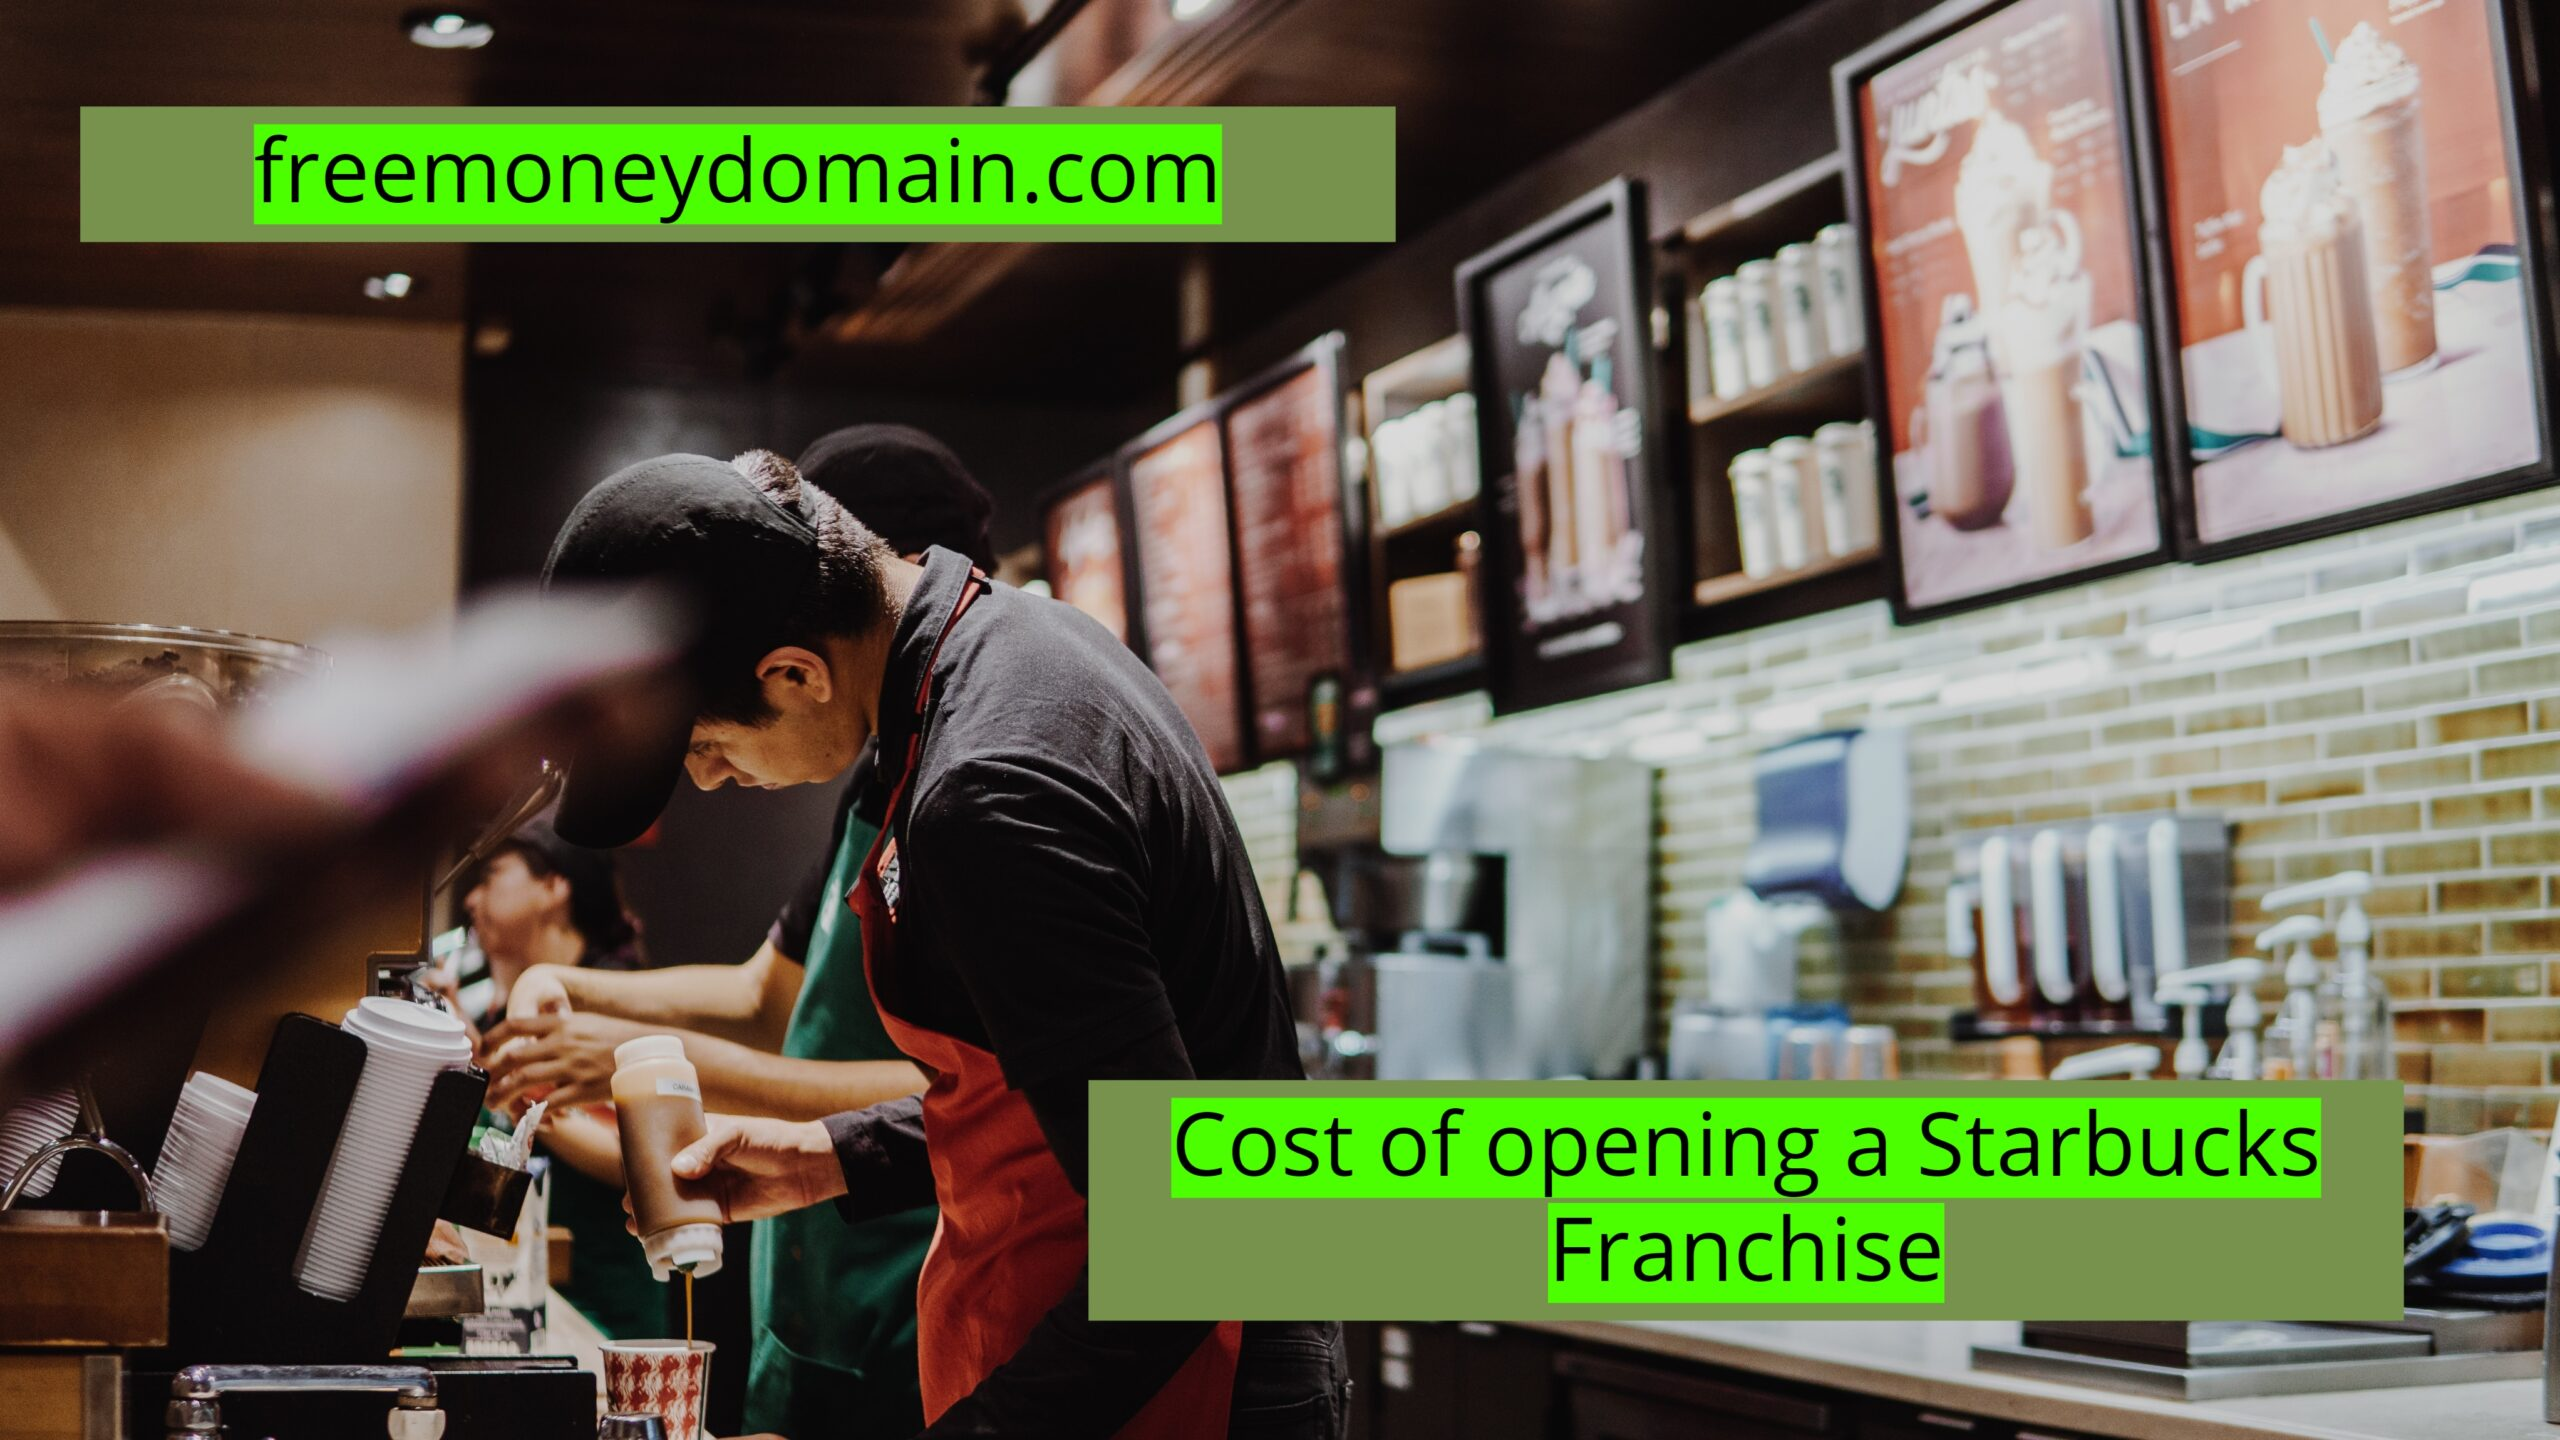 Cost of opening a Starbucks franchise in 2021